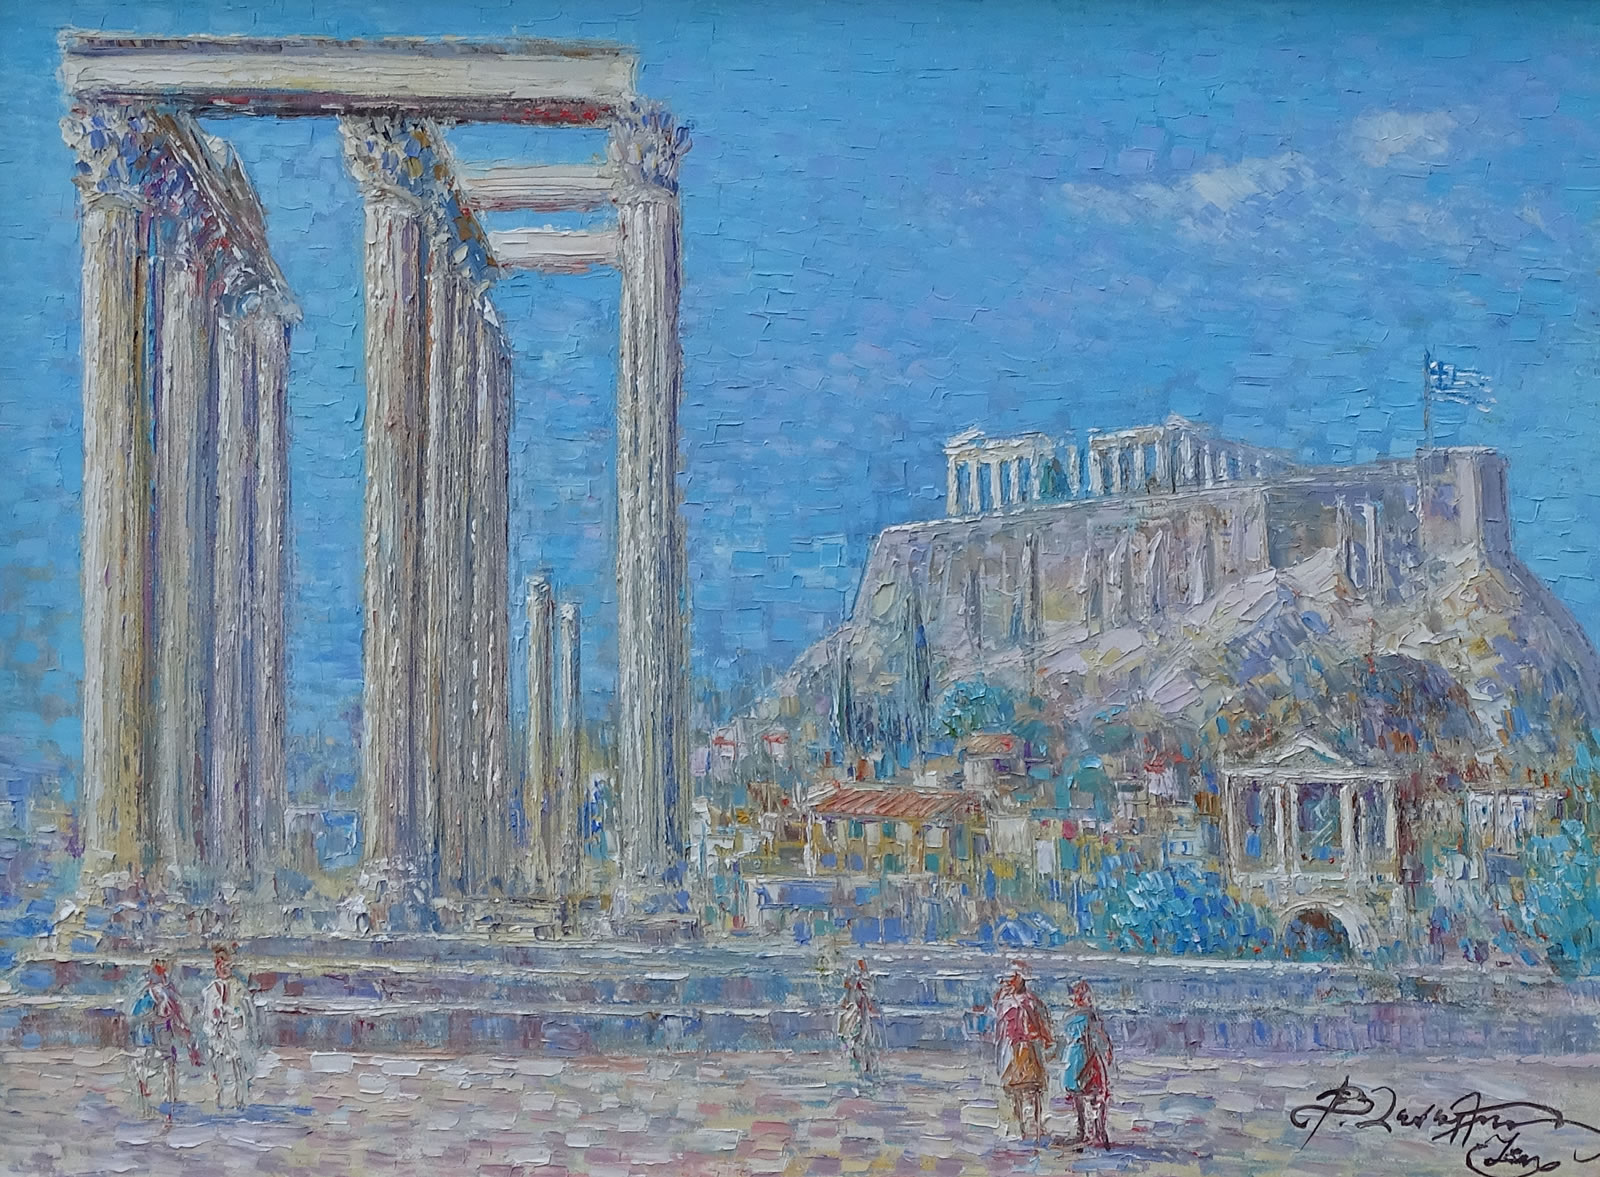 CLASSICAL GREECE, THE CRADLE OF CIVILISATION AND BASE OF TODAY'S WORLD